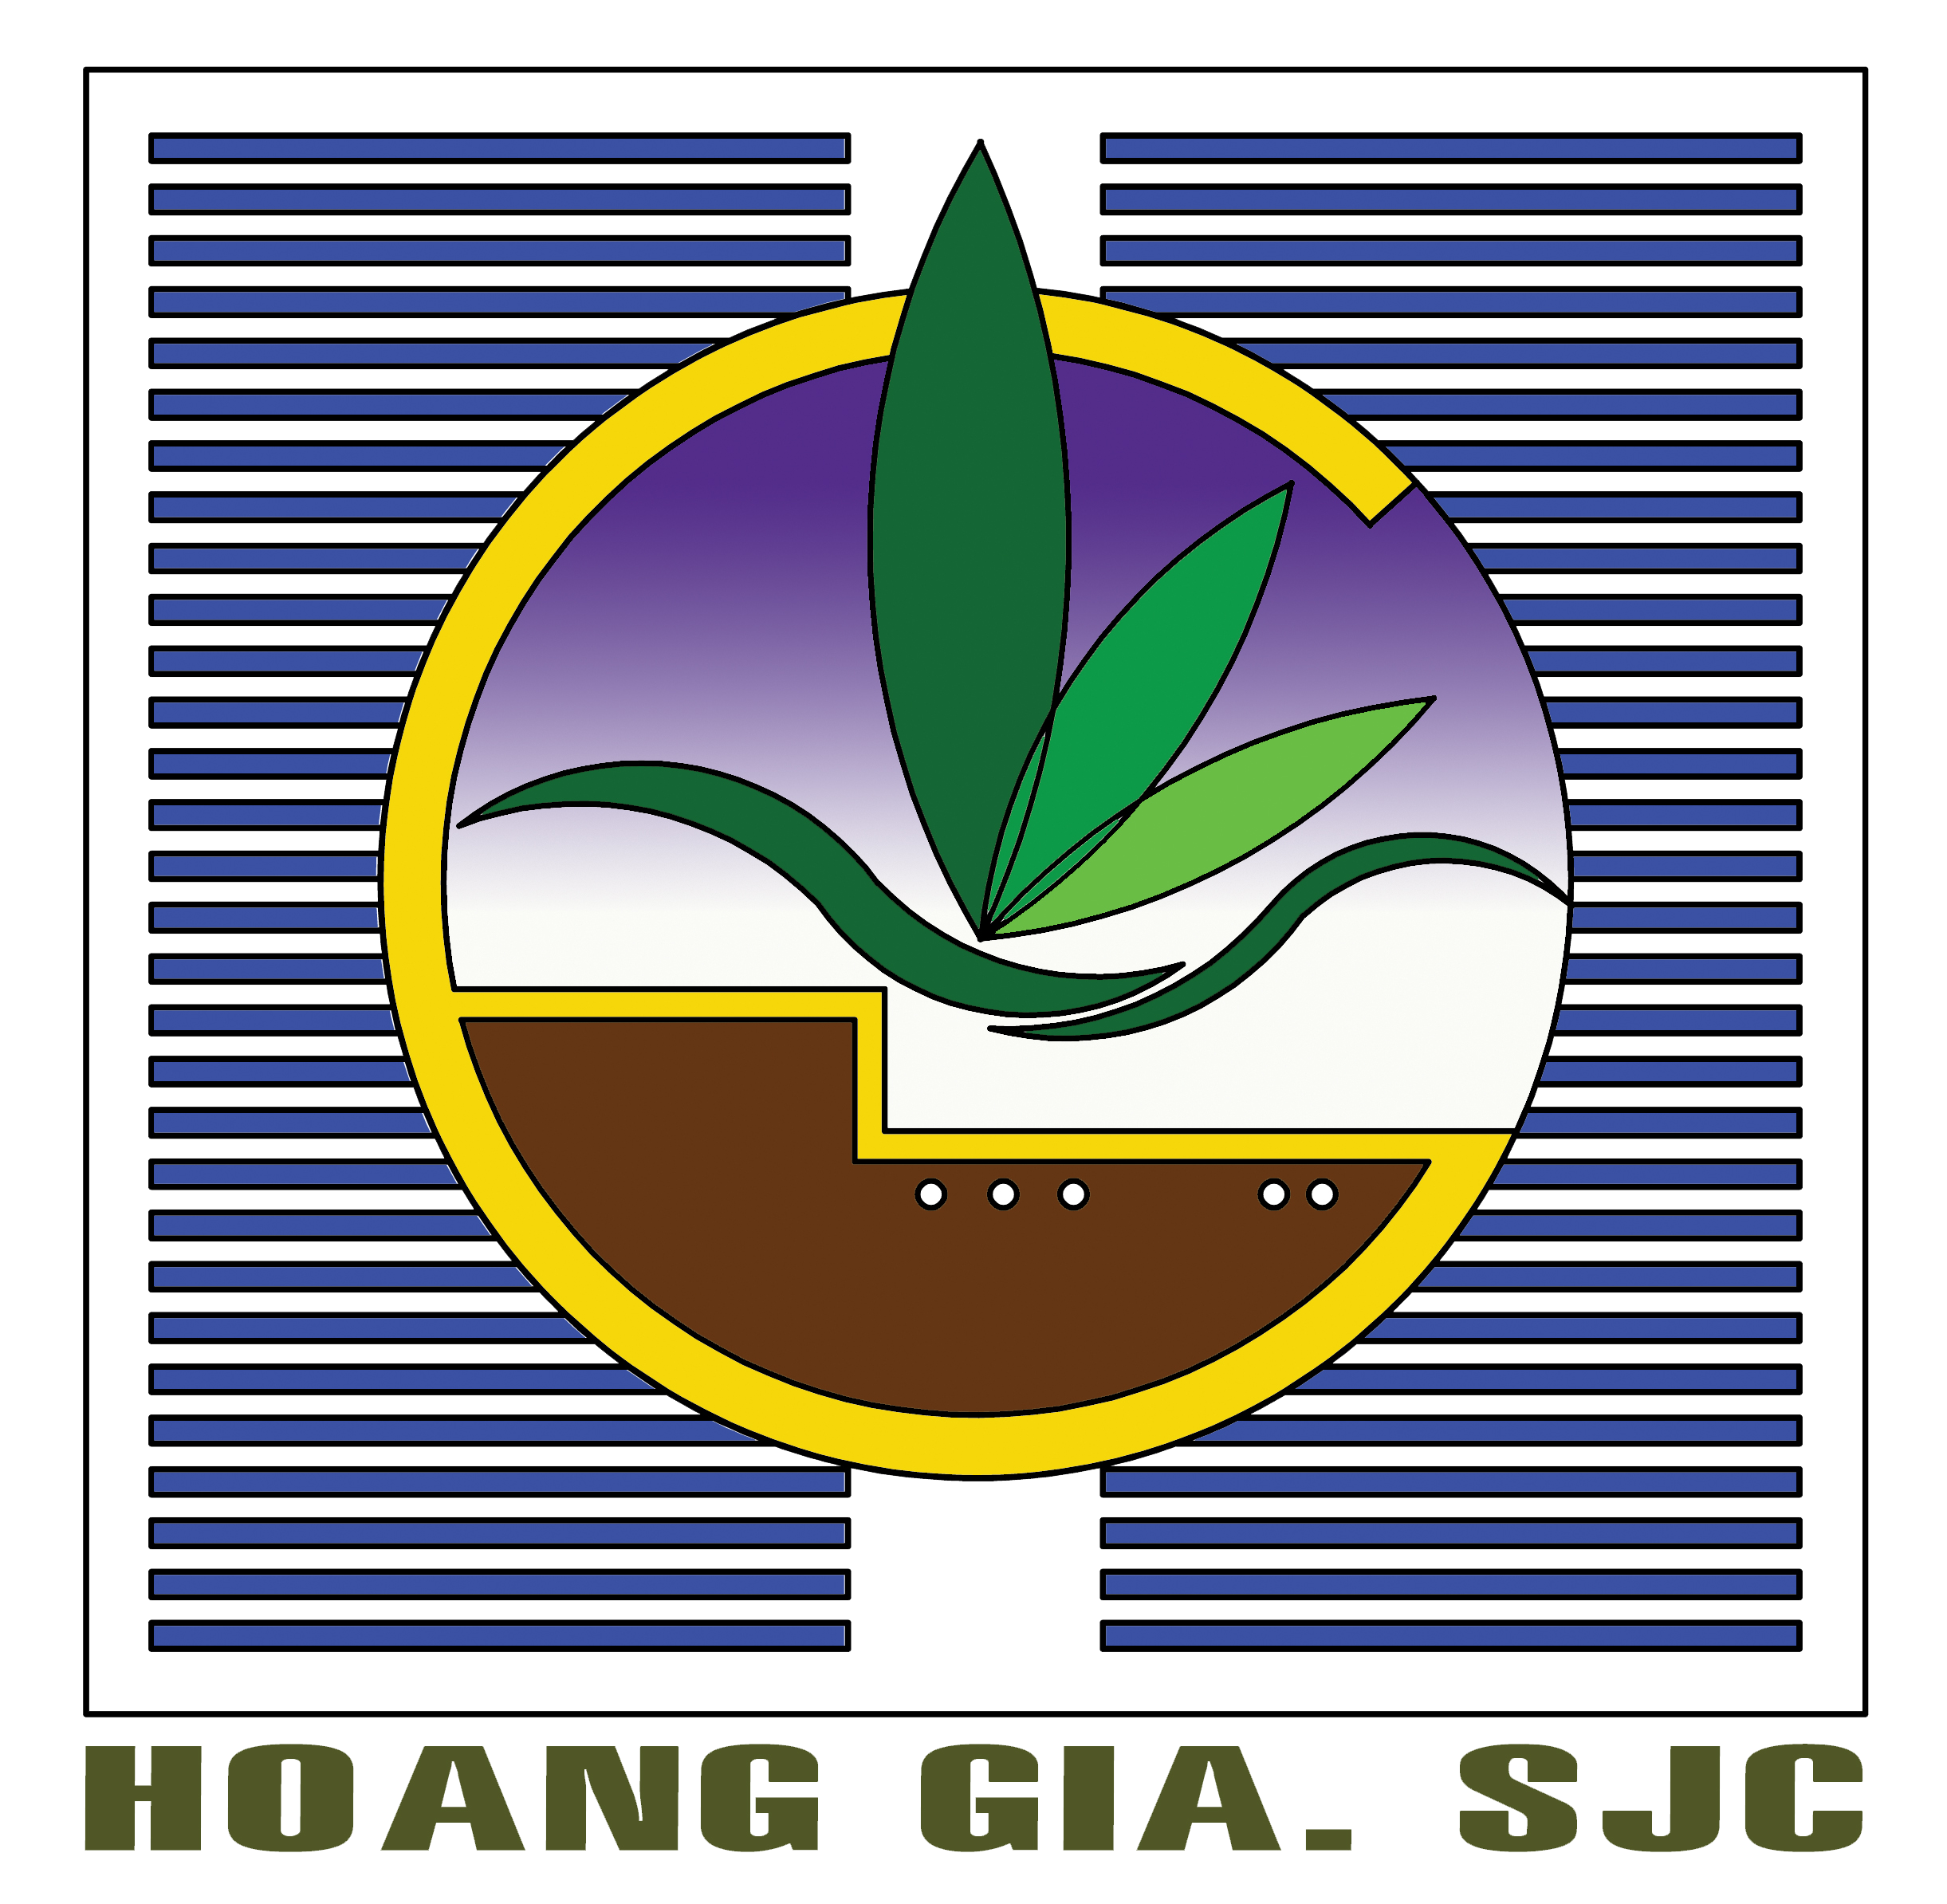 HOANG GIA CONTRUCTIONS AND LANDSCAPE